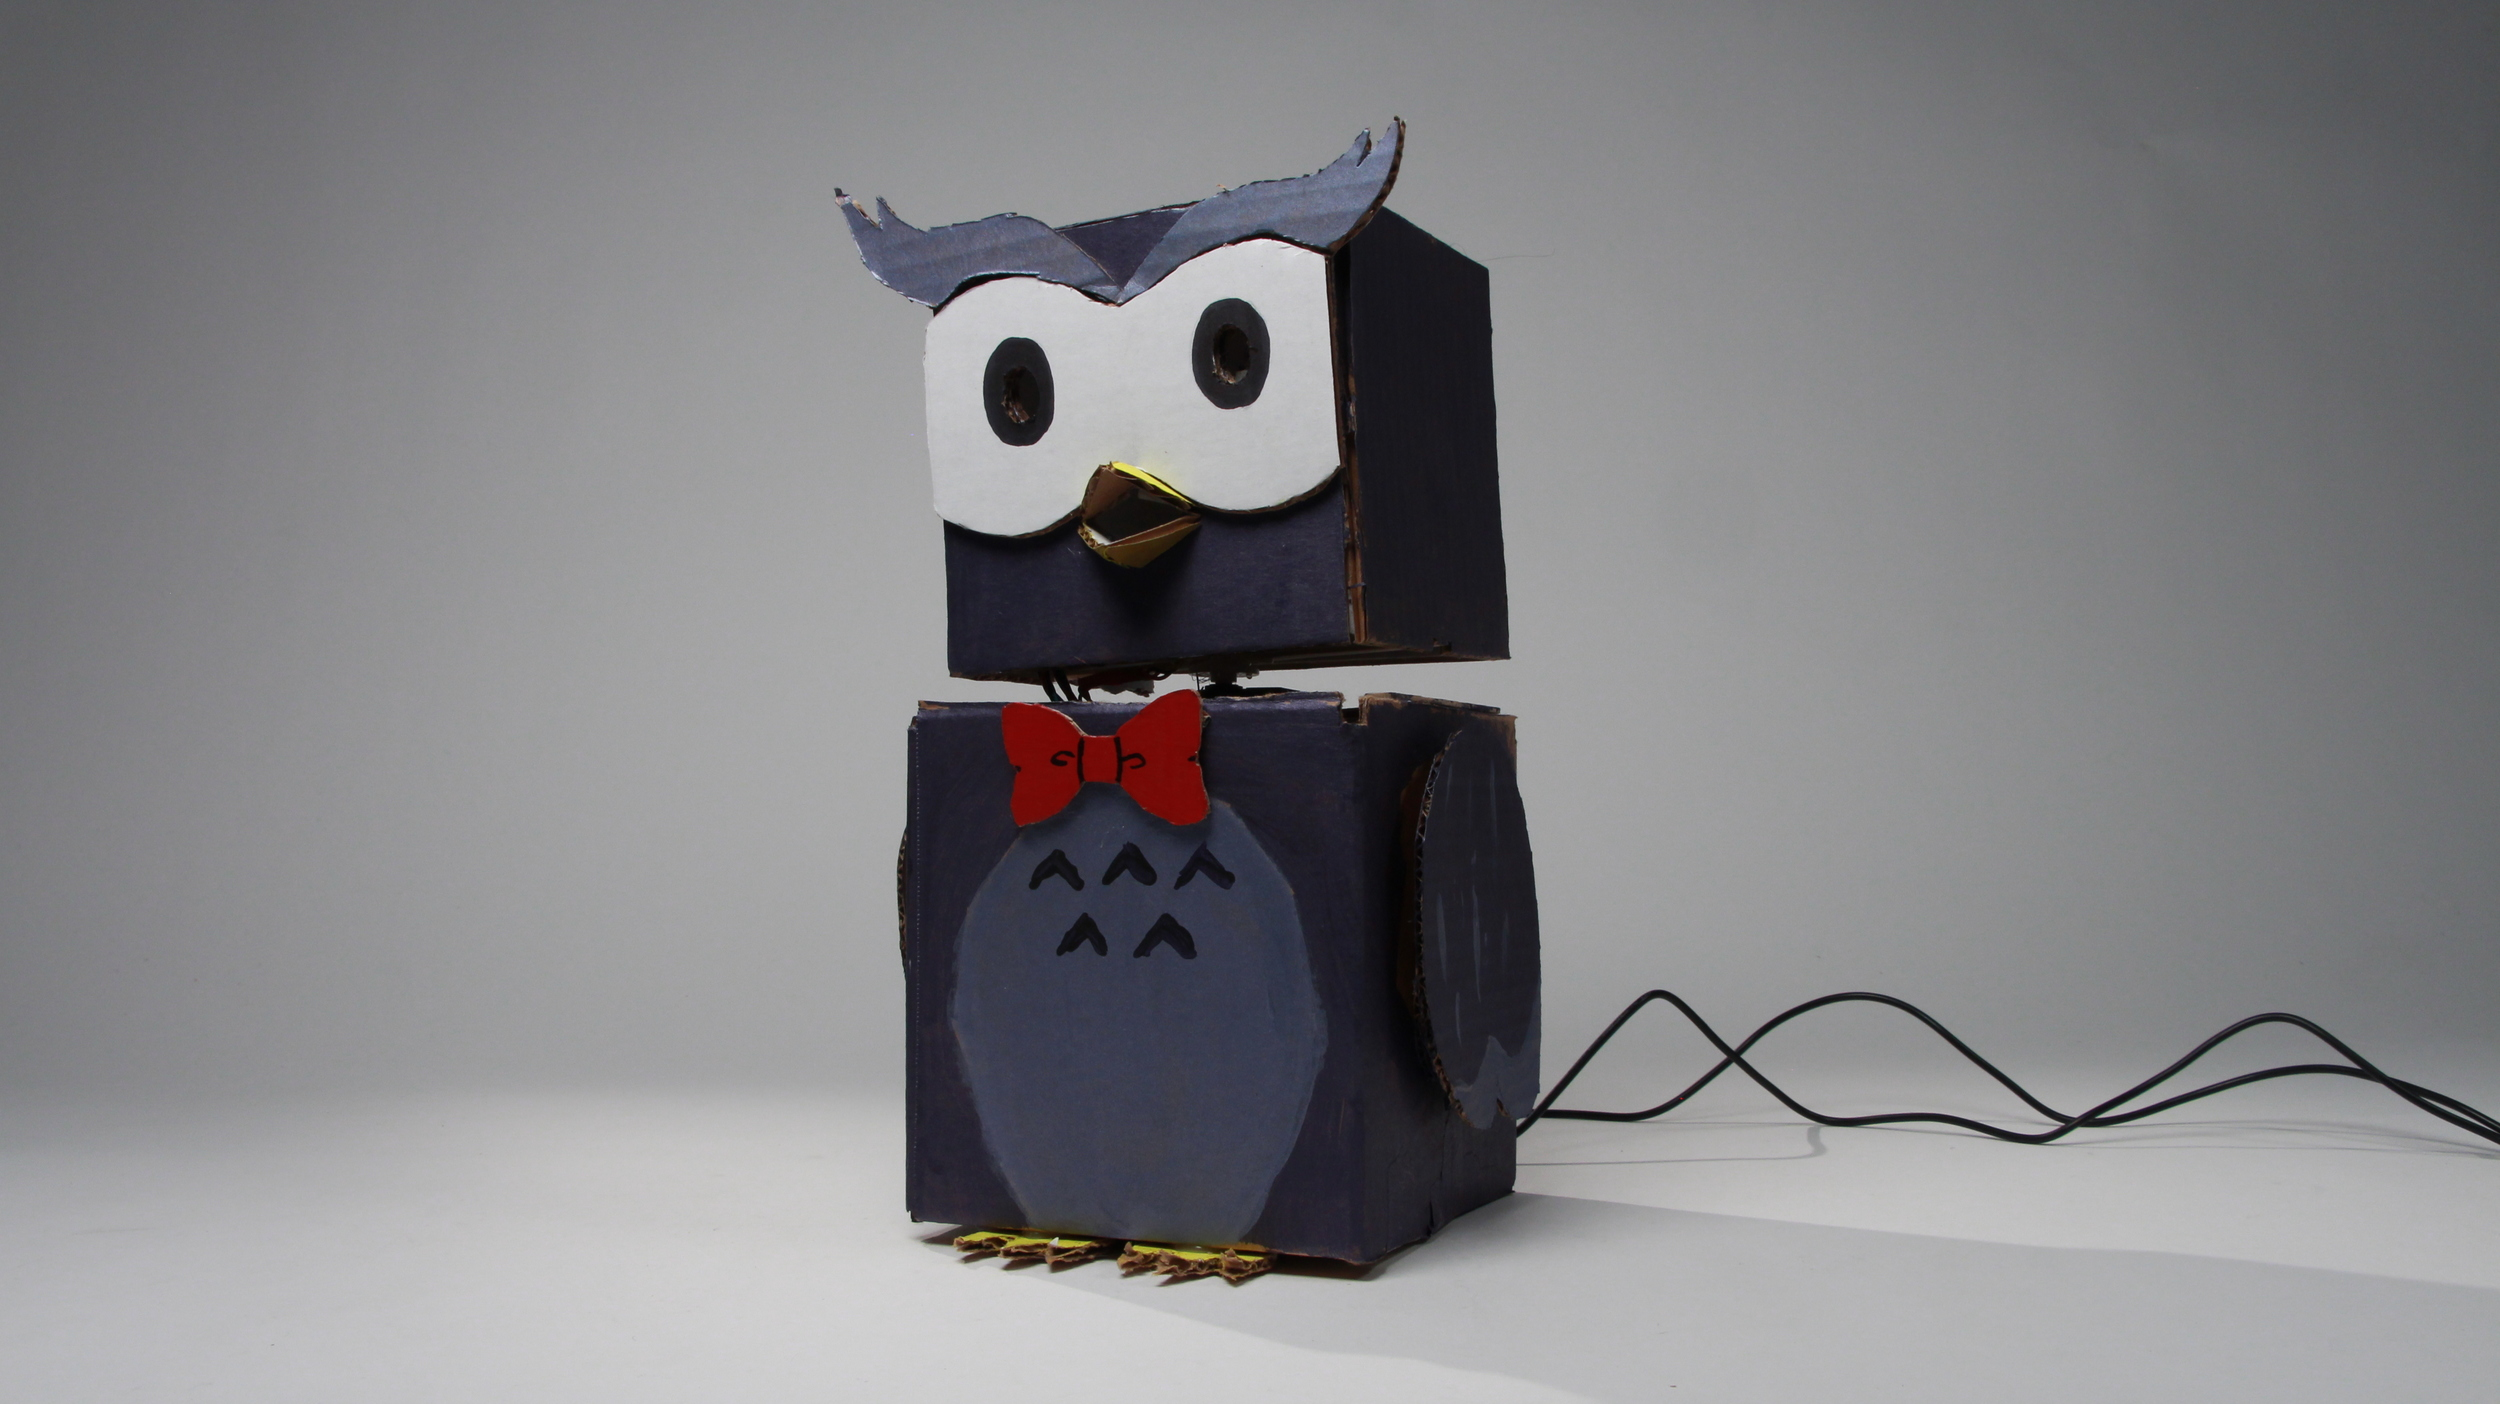 Owl. Designed by Brina & Isaiah